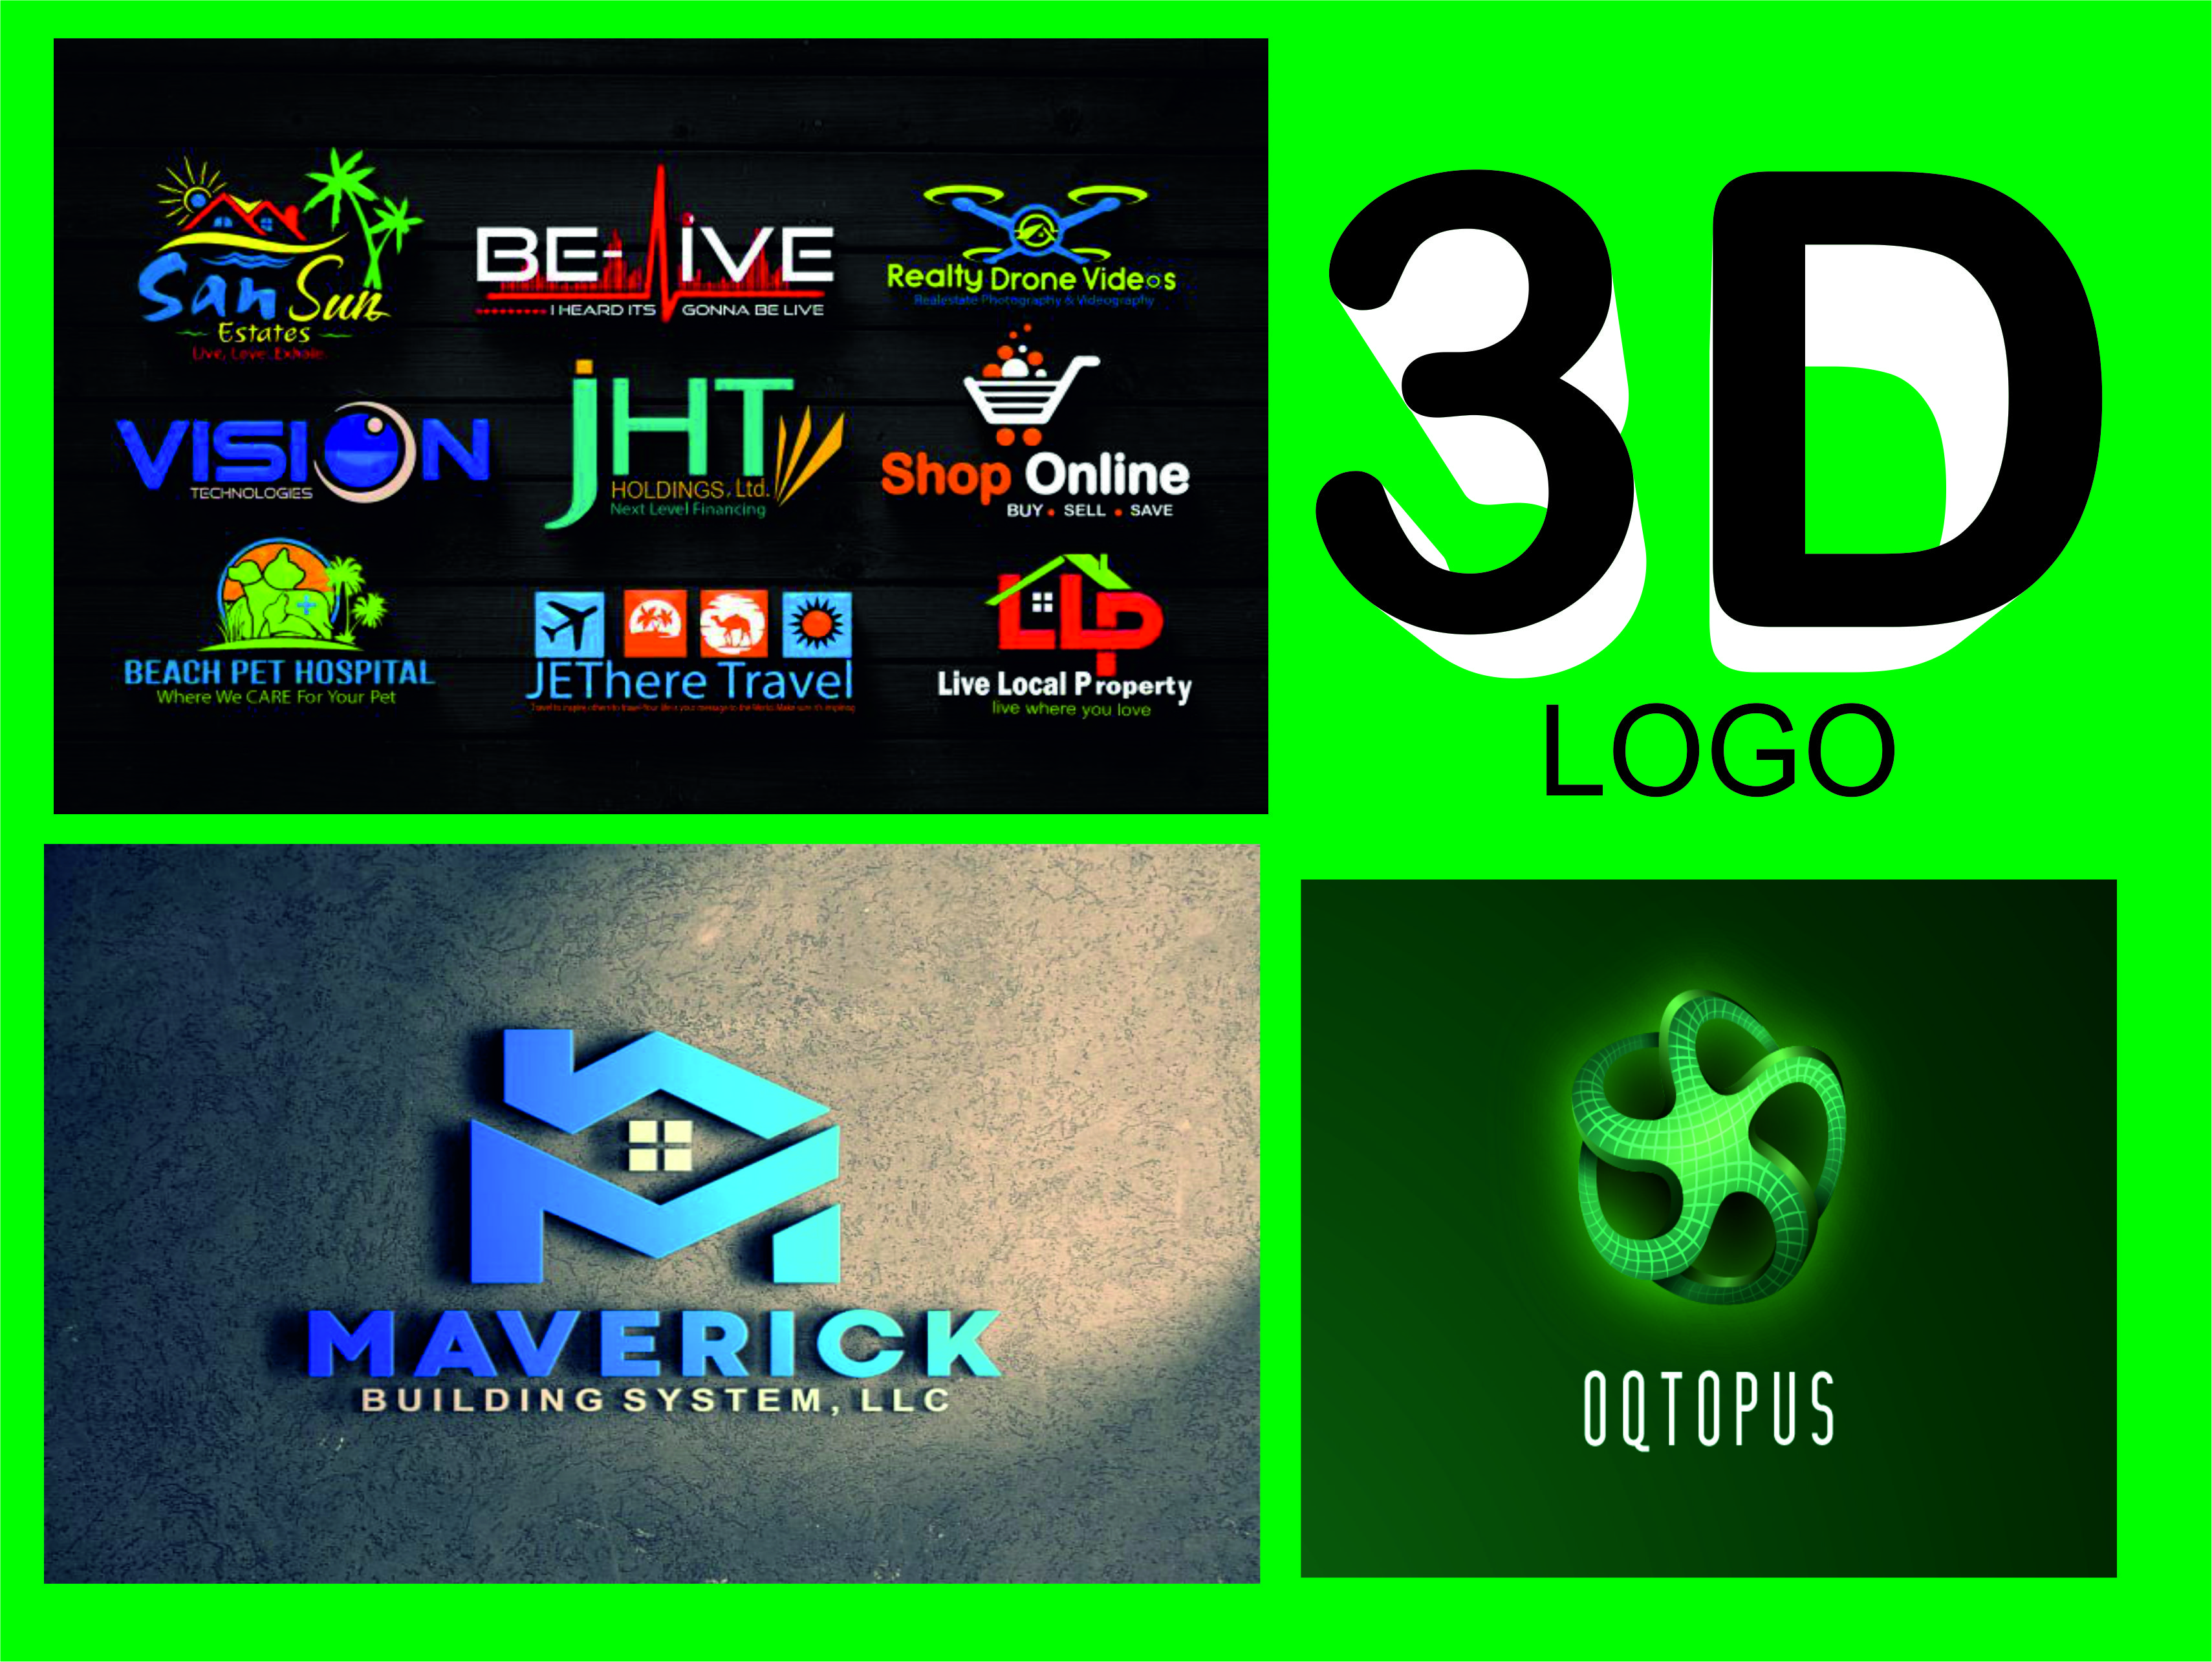 hi Giving shape to an idea is the thing I love to do, I am a graphic designer with over 5 years' exp